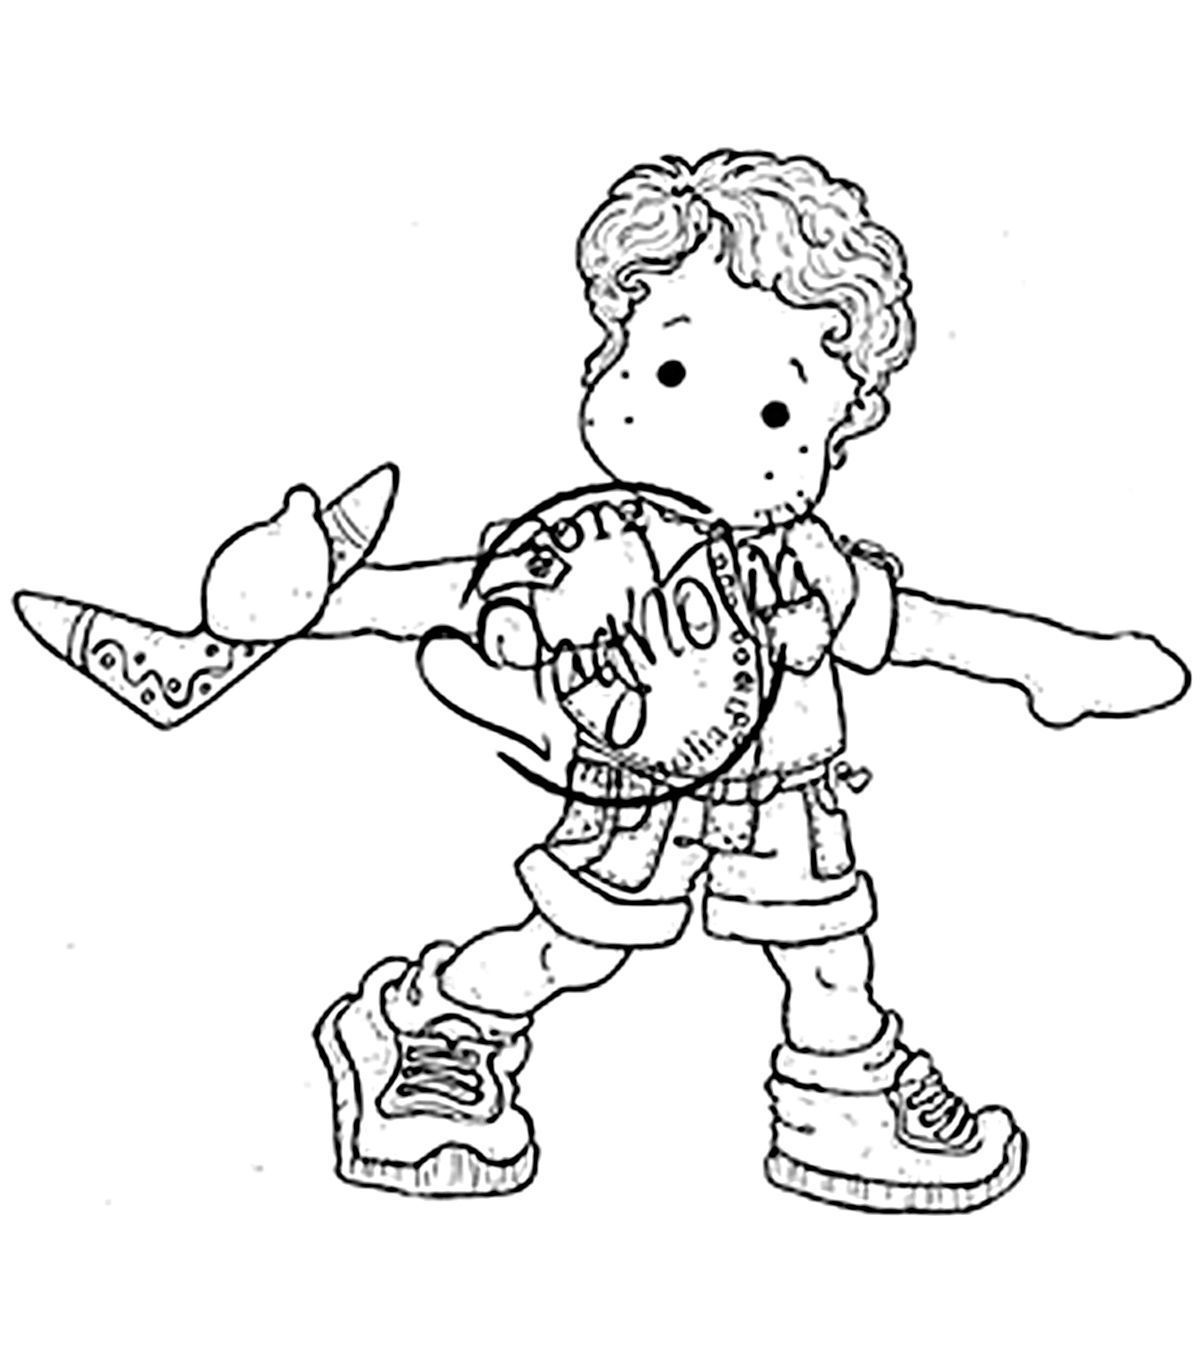 Australia Cling Stamp Edwin With Boomerang Jo Ann Magnolia Stamps Digi Stamps Tampons Magnolia